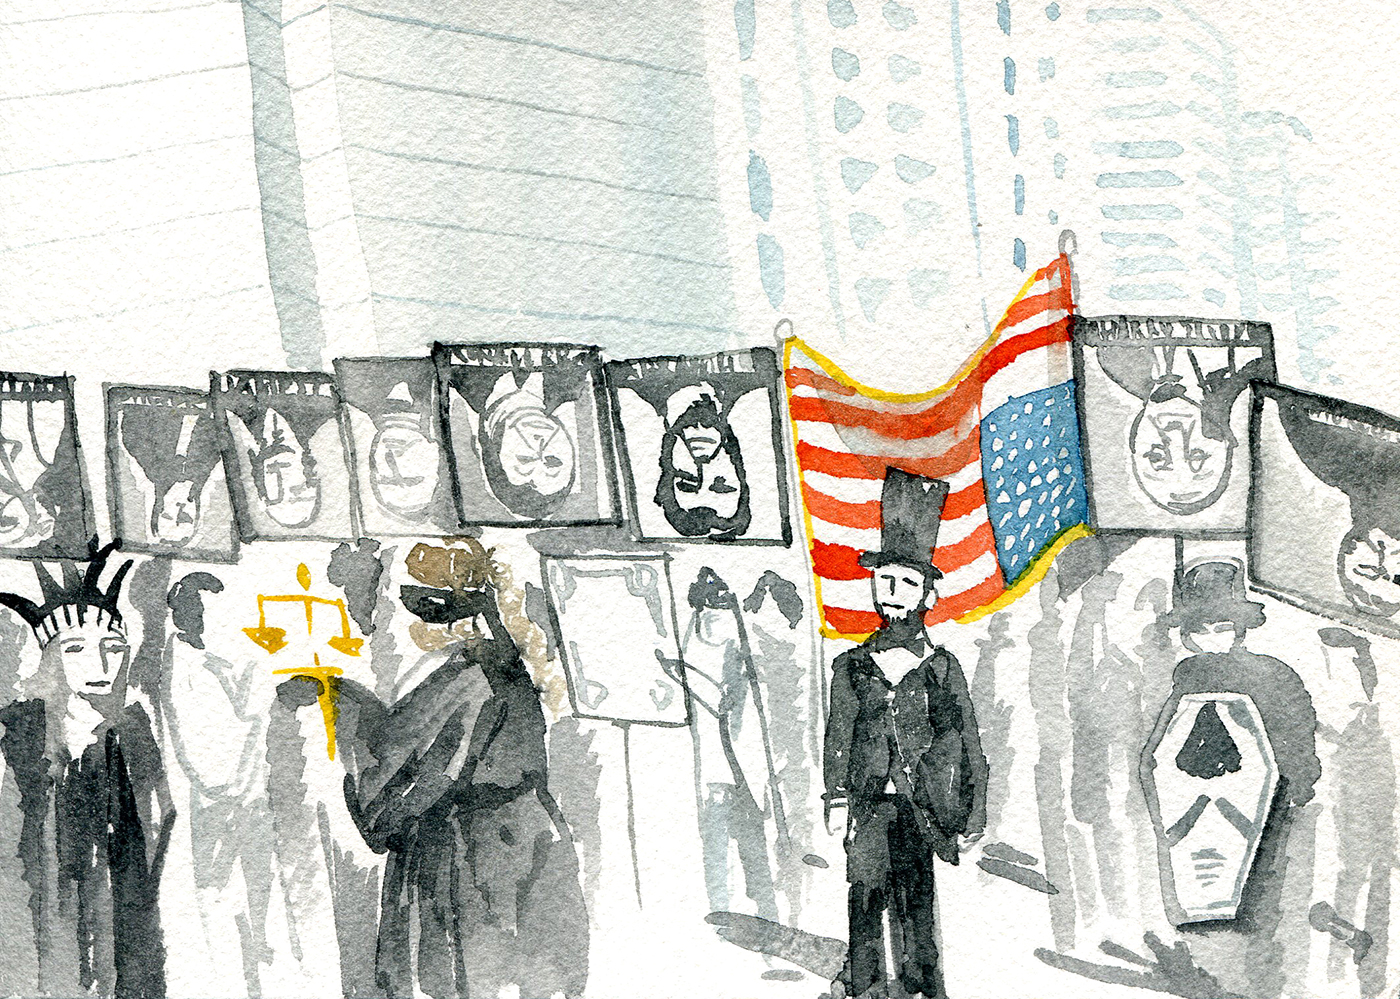 Indywatch feed allcommunity beneath the arch was a grouping of prominent funeral guests lady justice a somber lady liberty robed in black abraham lincoln and other veiled figures fandeluxe Gallery